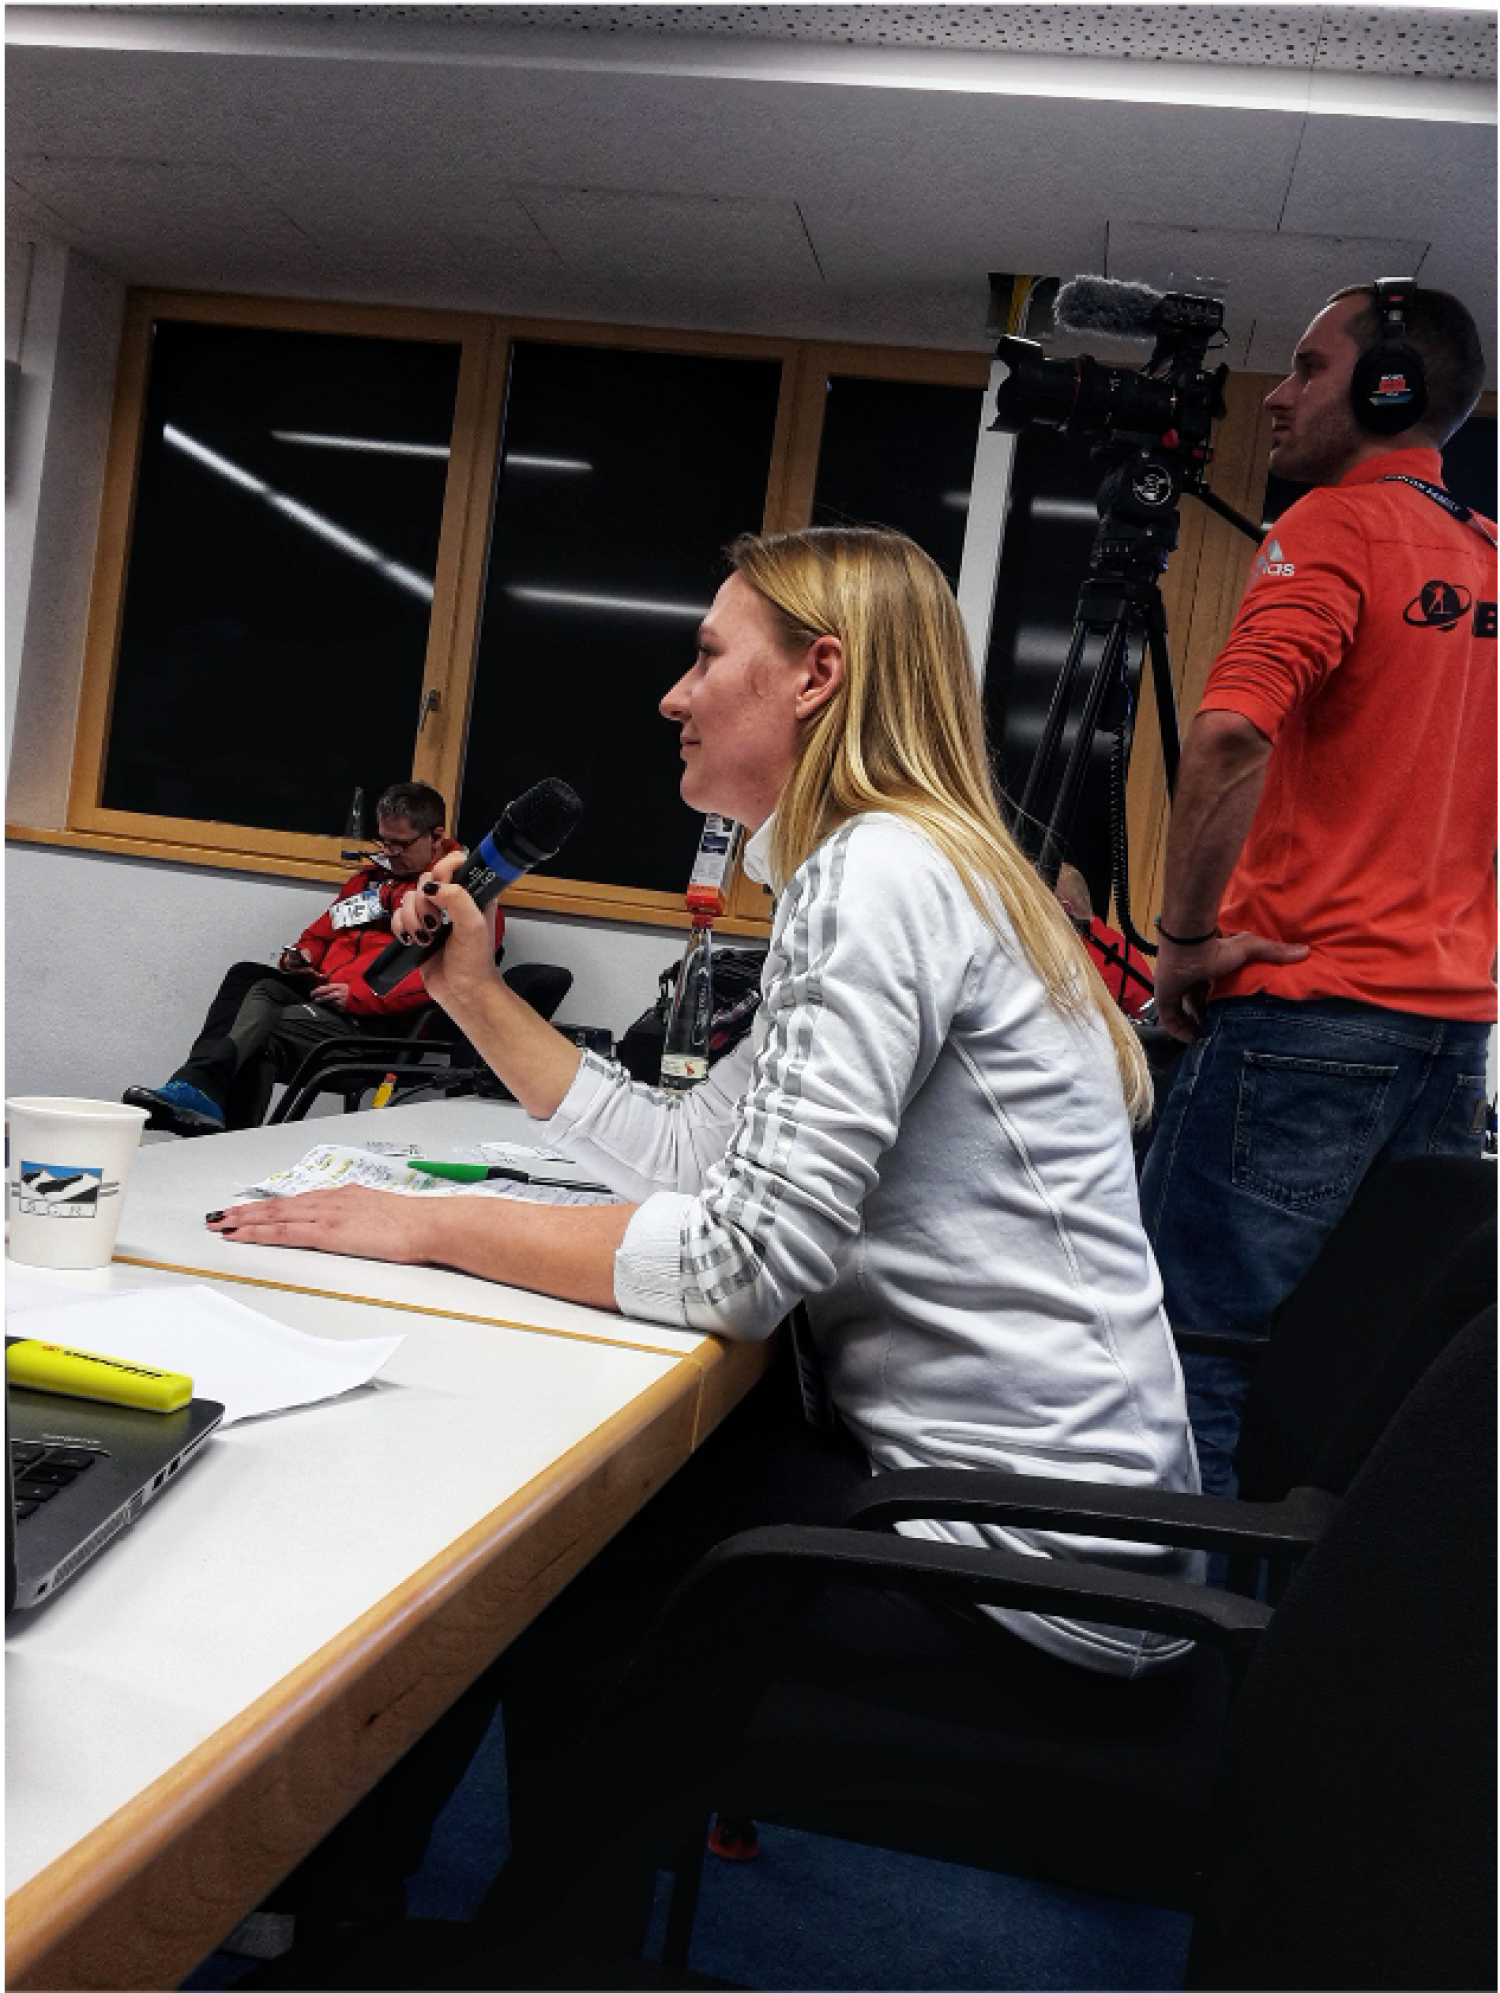 Journalism Instructor Marina Dmukhovskaya has covered two previous Winter Games: Sochi in 2014 and Pyeongchang in 2018.